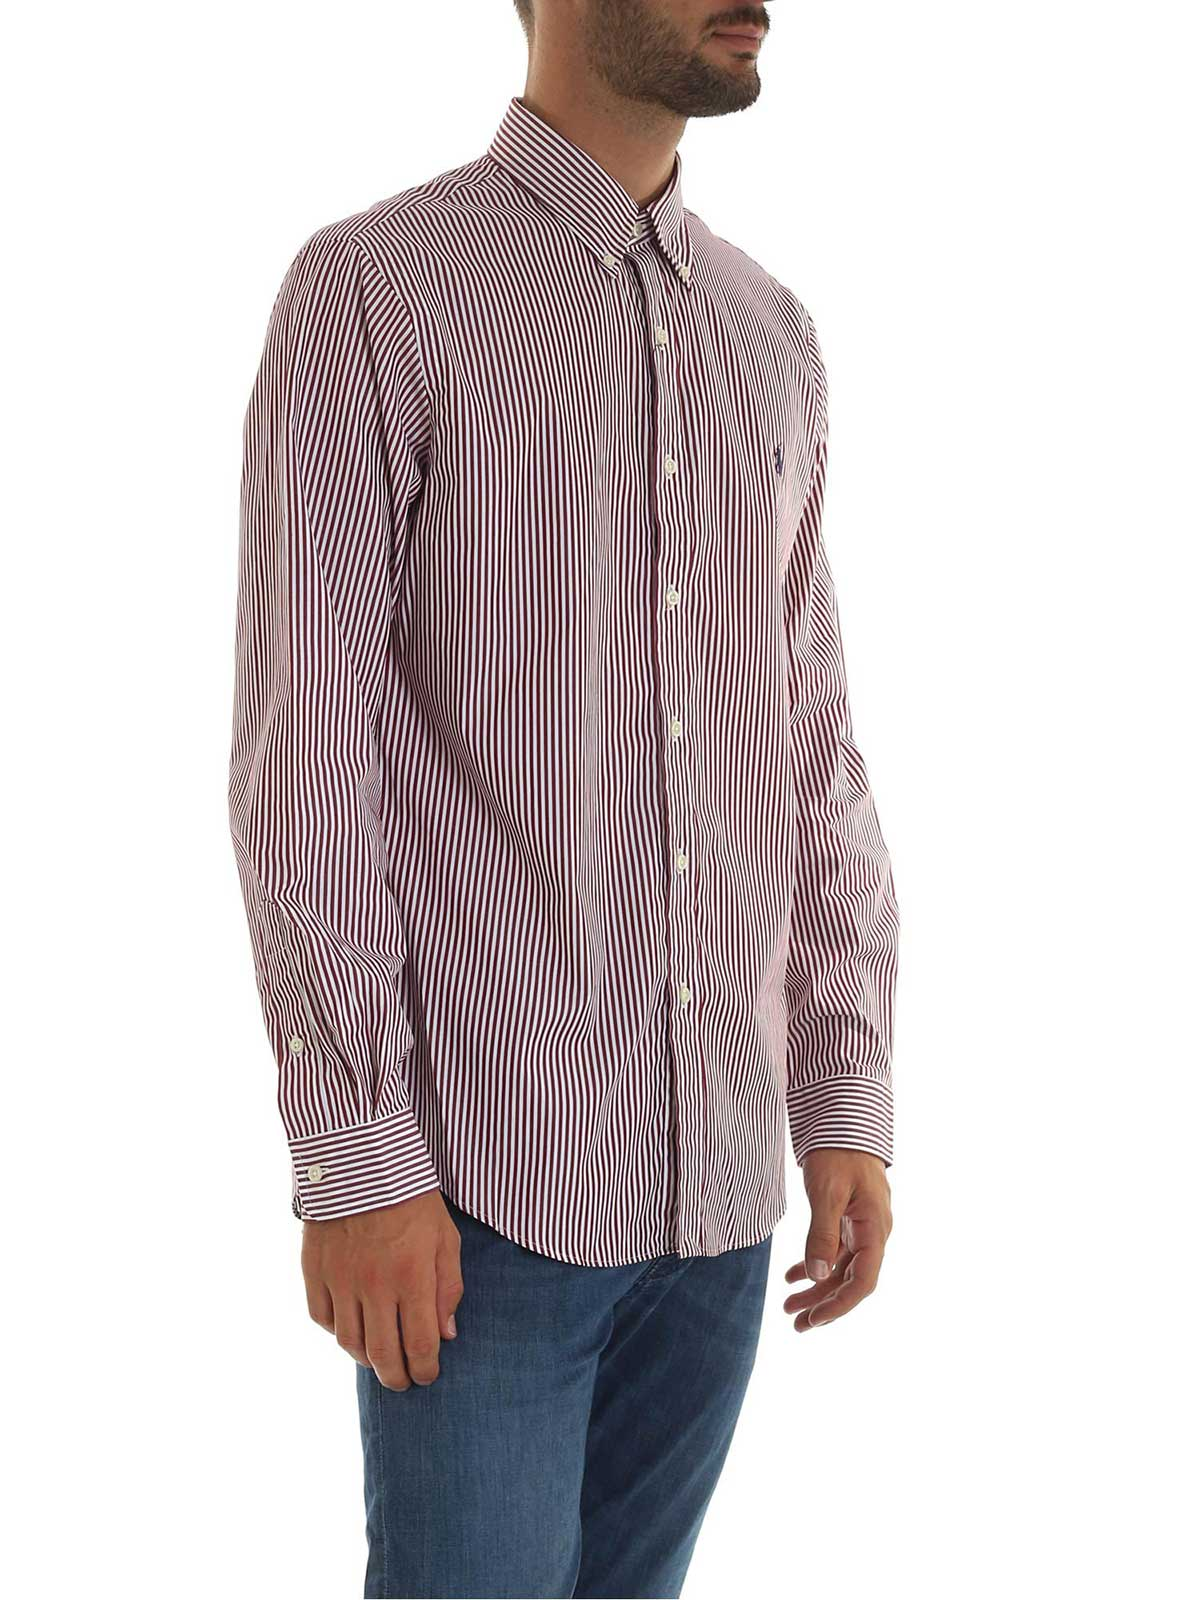 Picture of POLO RALPH LAUREN | Men's Striped Cotton Shirt